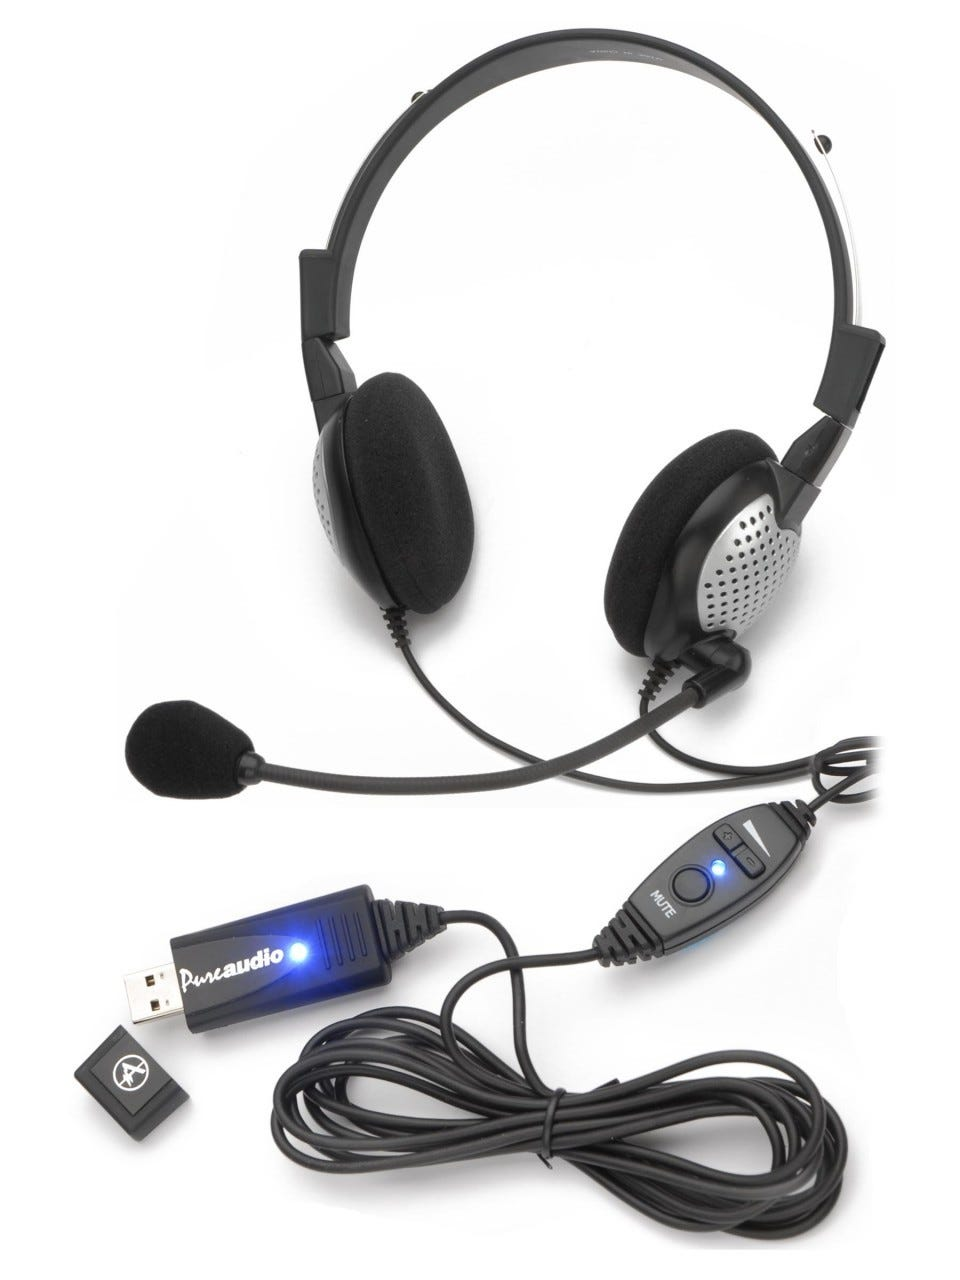 Andrea NC-Series High Fidelity Voice Input Headsets